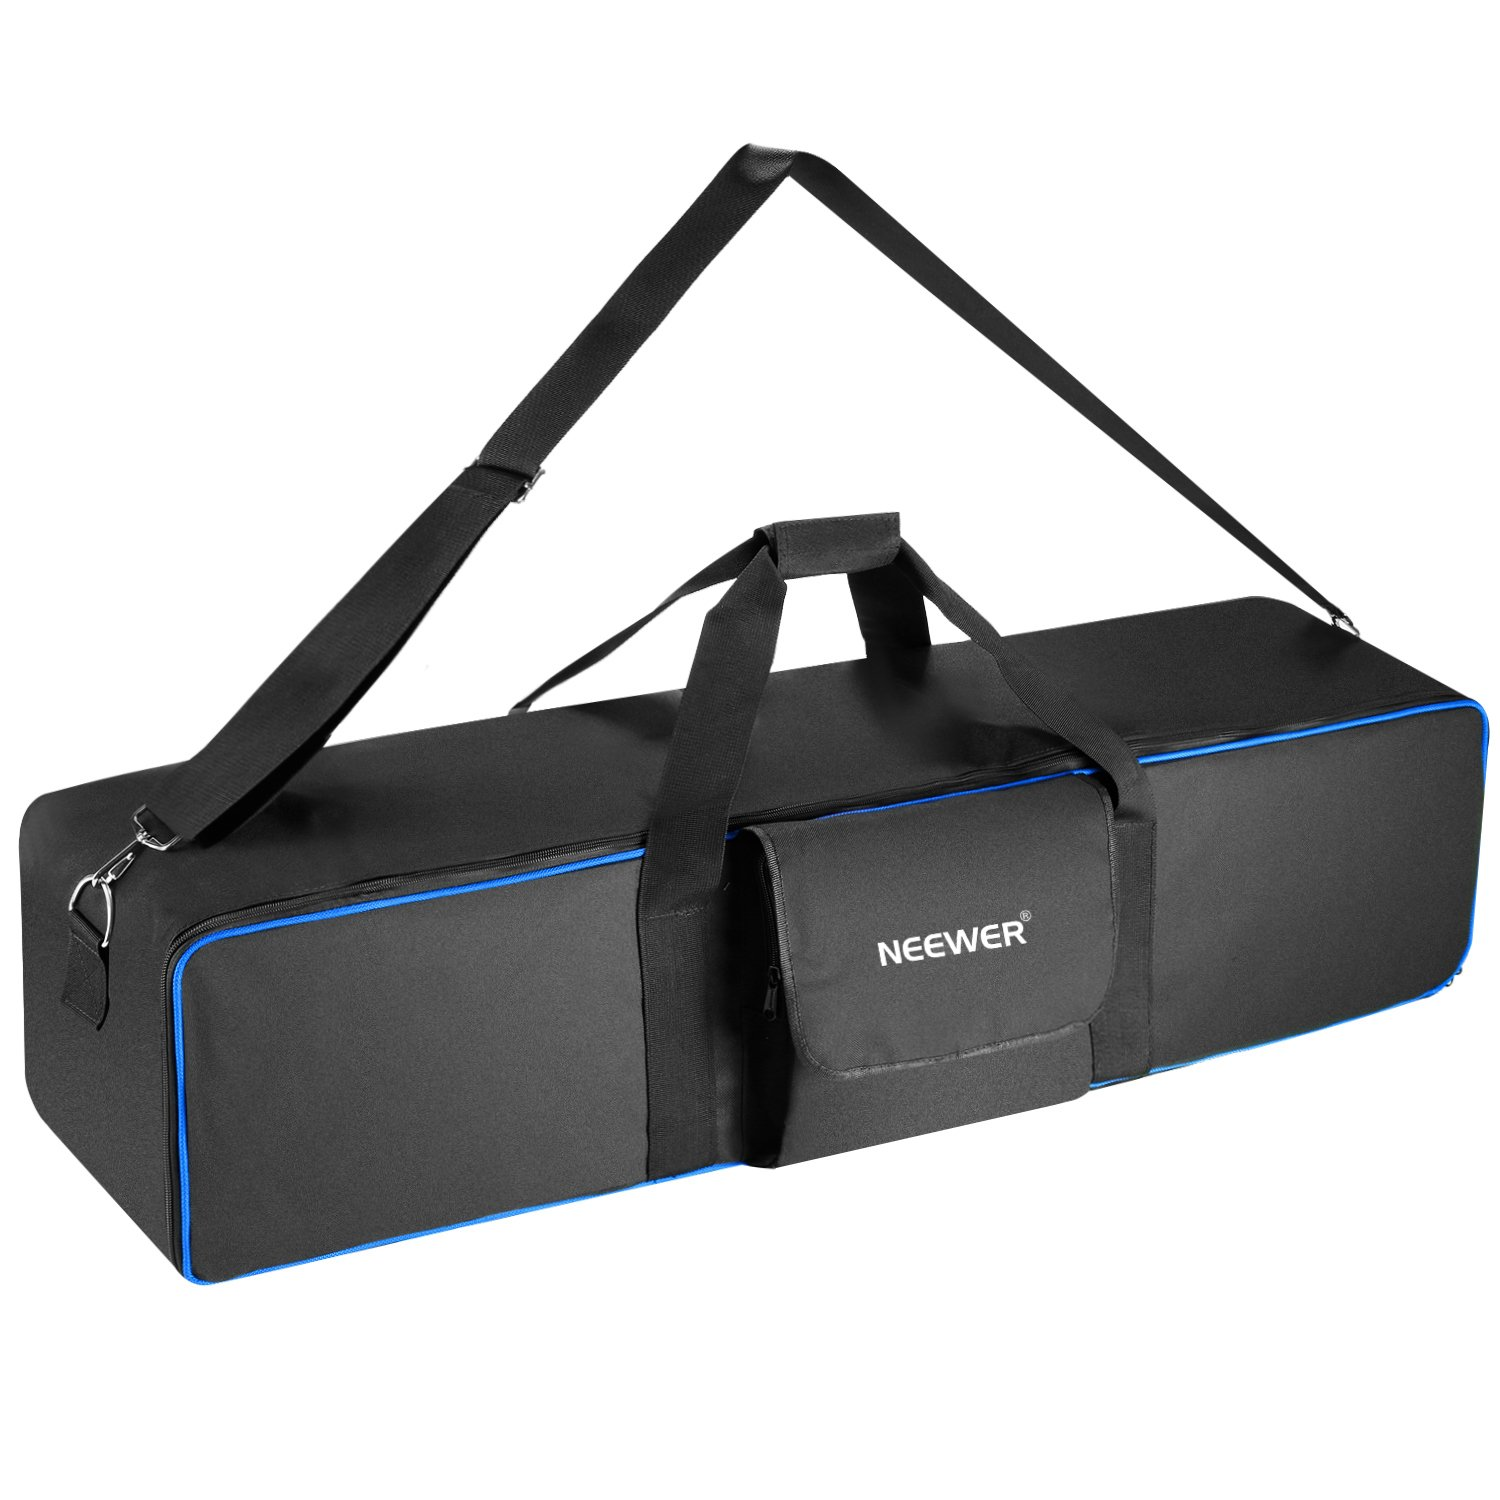 Neewer Large Photo Studio Lighting Equipment Carrying Bag 41.3x9.84x9.84inches with Shoulder Strap and Handle for Light Stand, Tripod, Umbrella, Monolight, LED Light, Flash and Other Accessories (Blue) 10092352